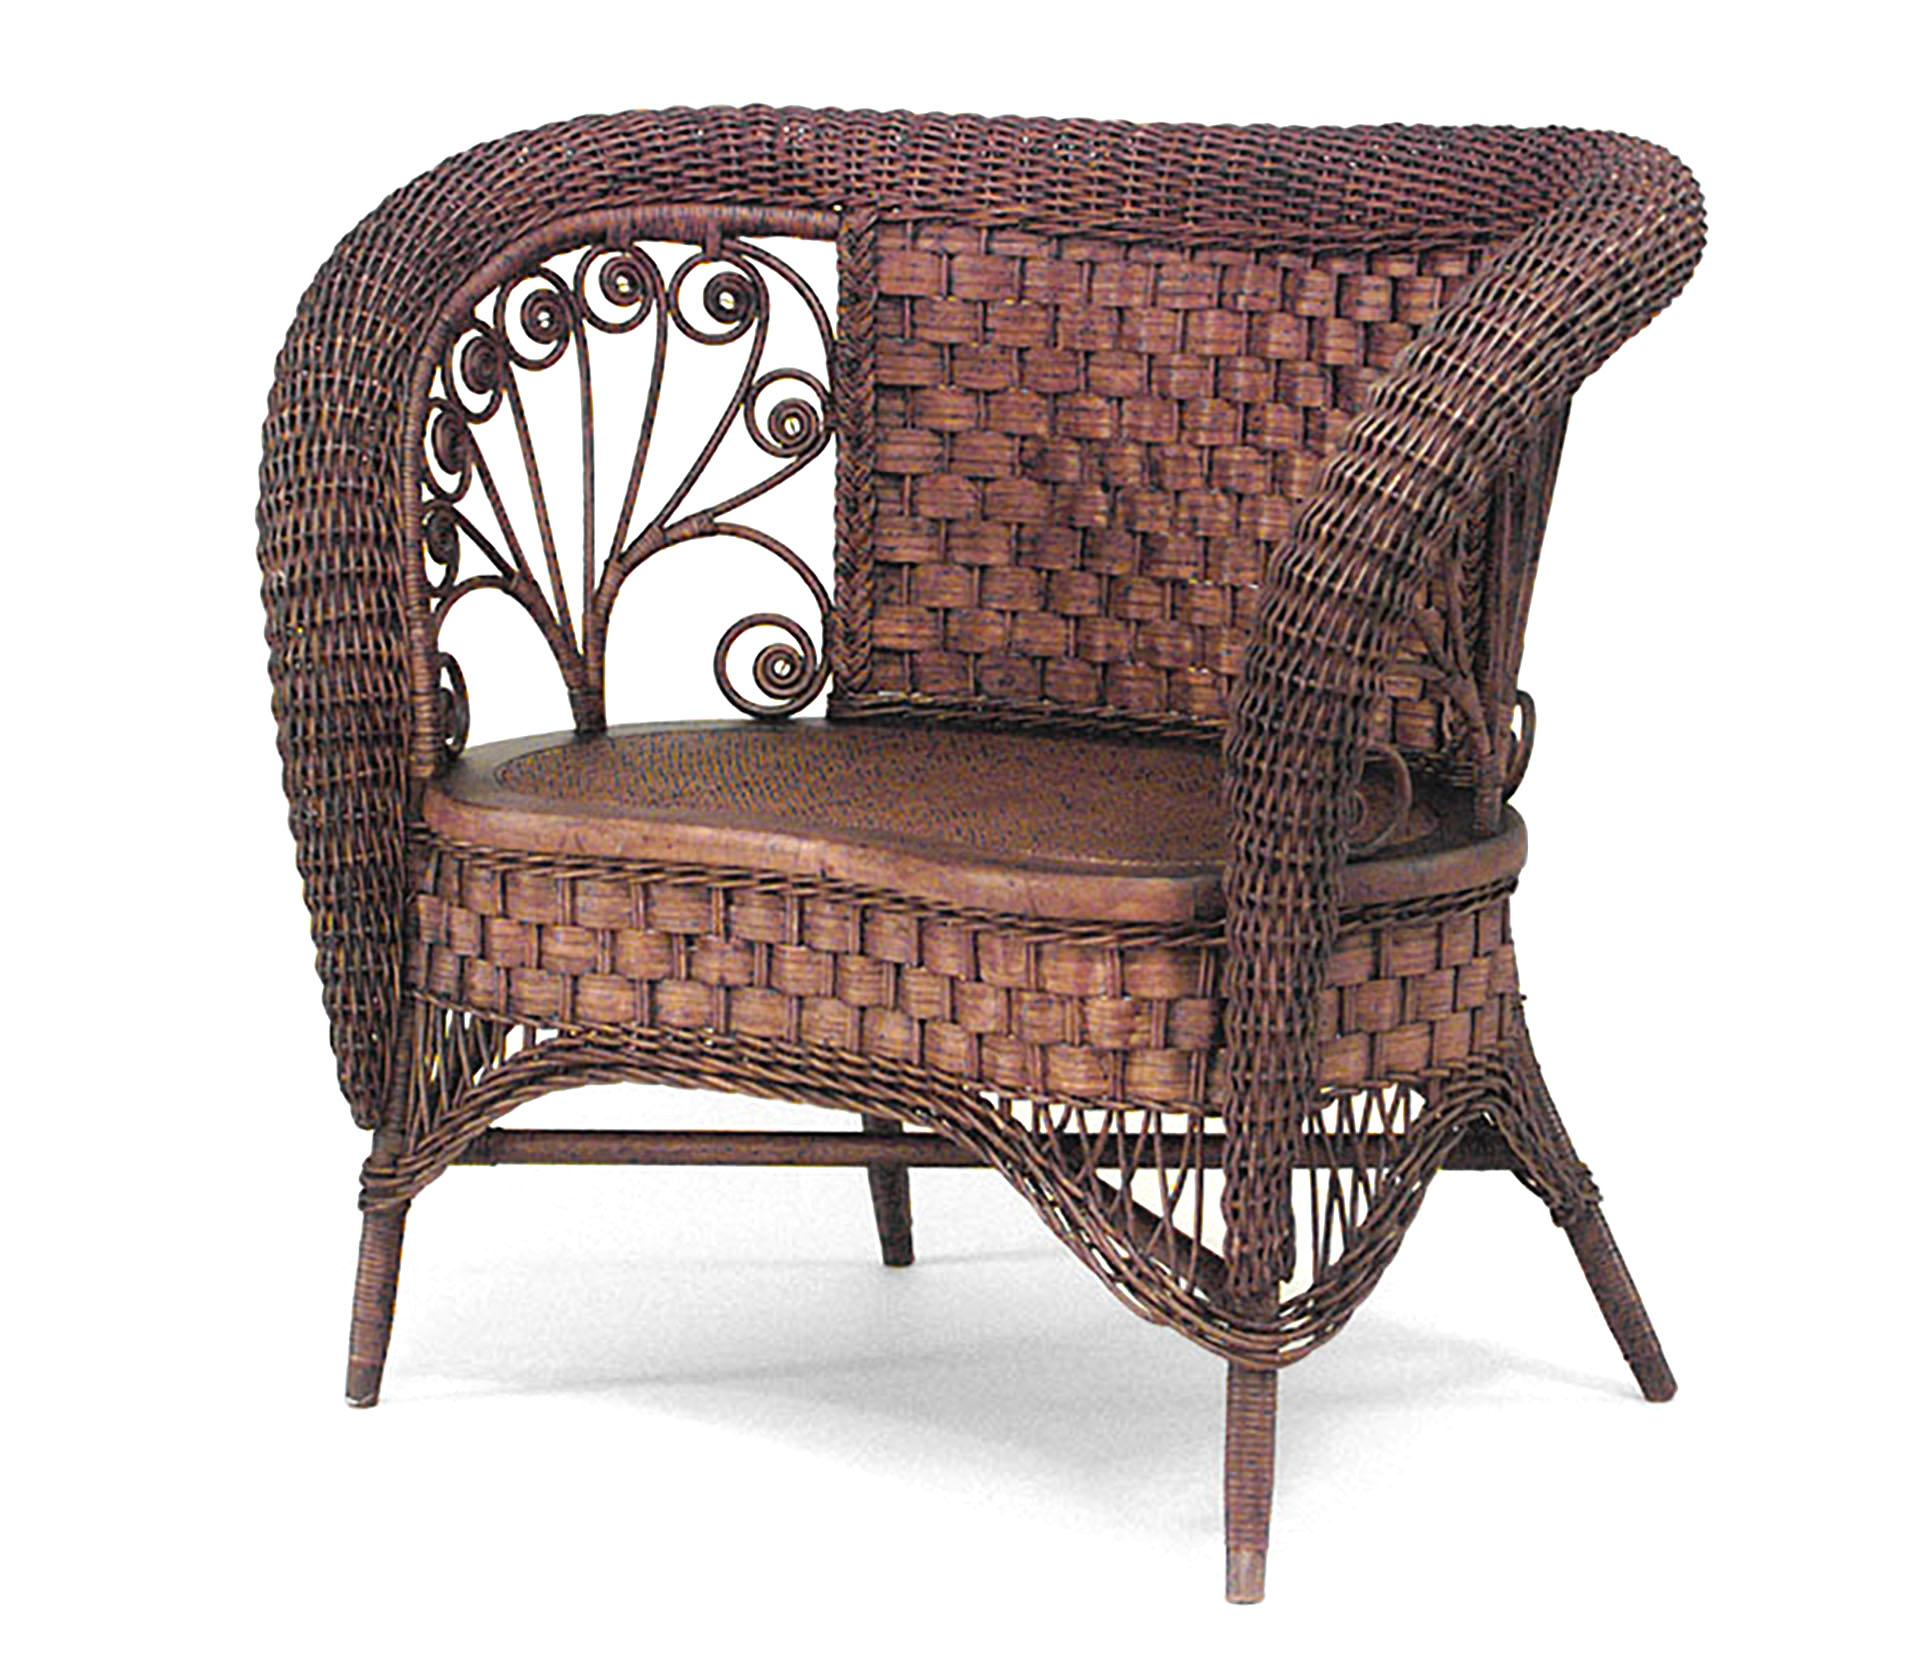 19th Century American Natural Wicker